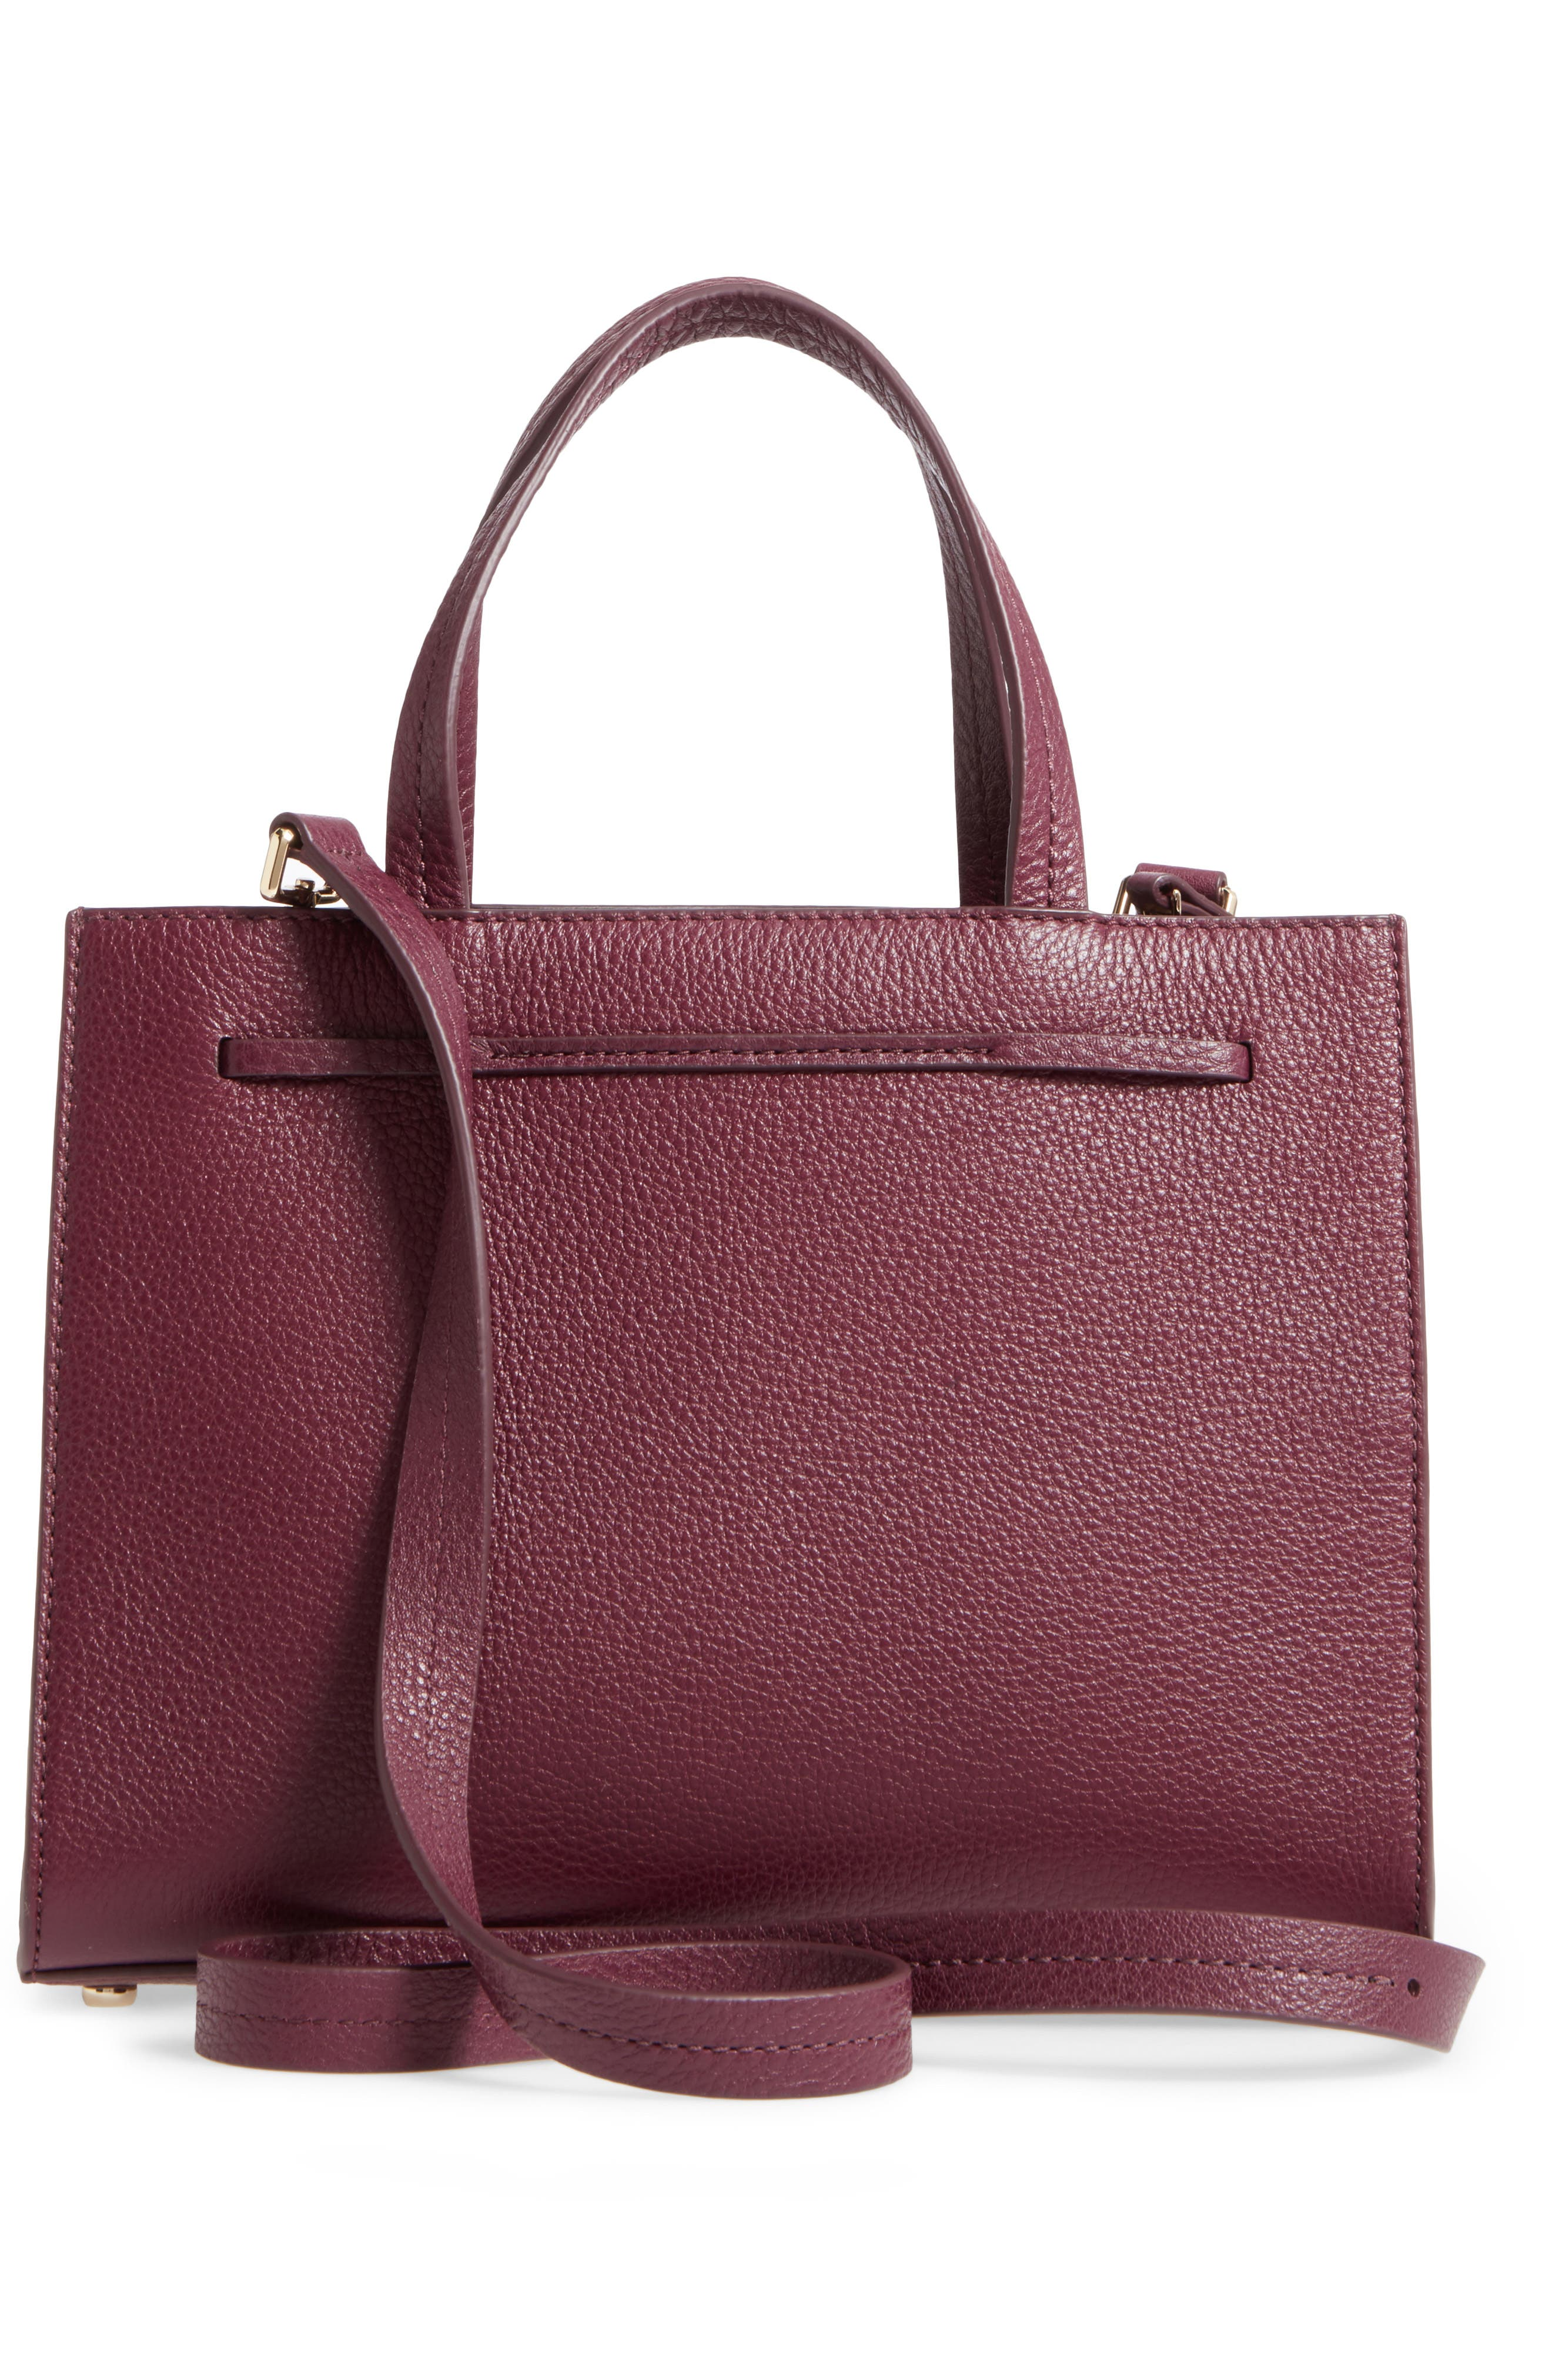 KATE SPADE NEW YORK,                             hayes street small isobel leather satchel,                             Alternate thumbnail 3, color,                             513